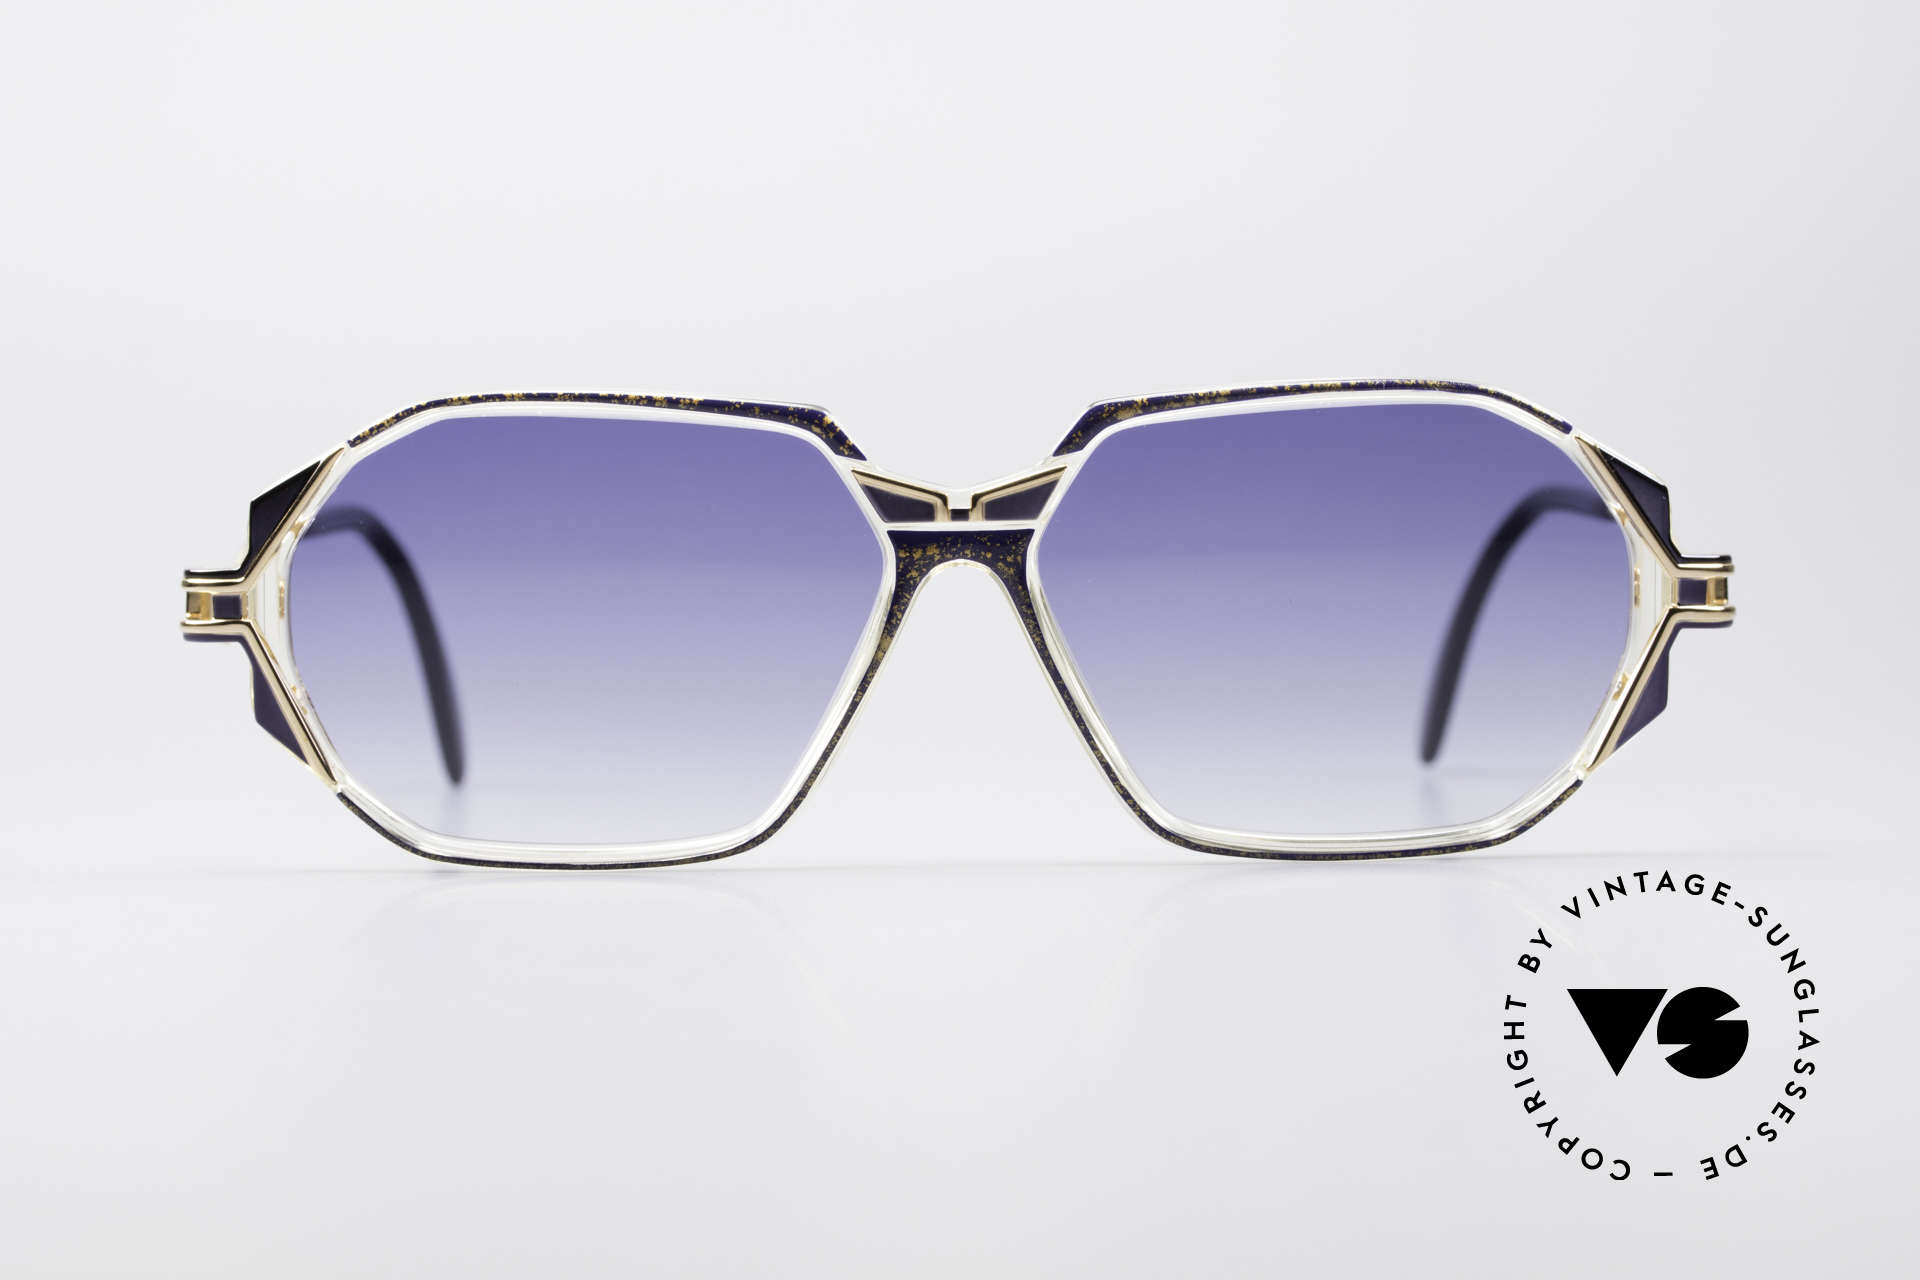 Cazal 361 Designer Sunglasses No Retro, exciting design on the hinges of the arms; truly vintage, Made for Women